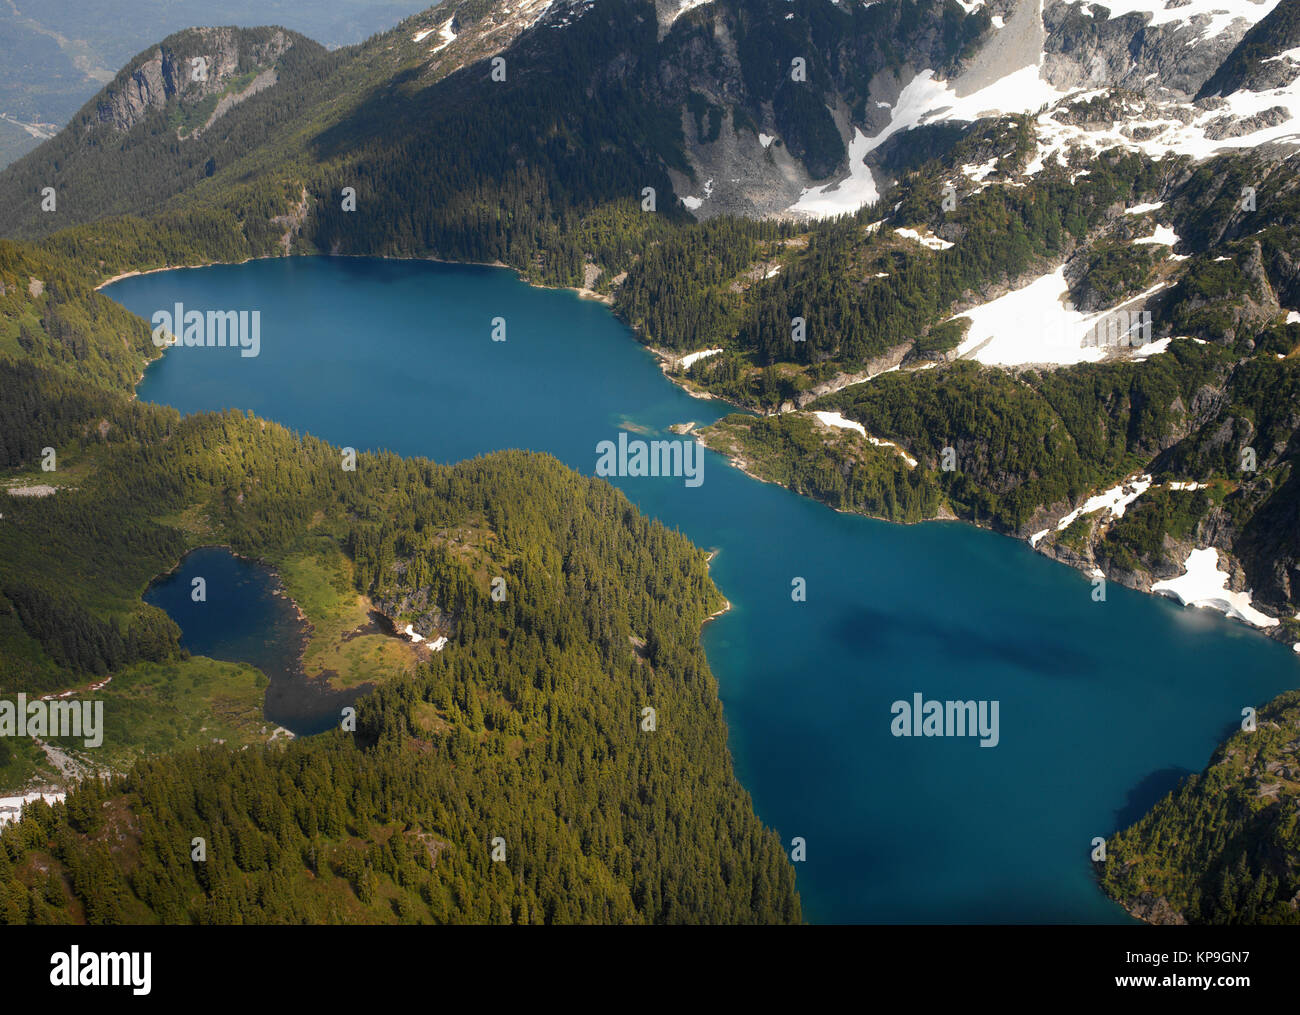 Aerial view of Lake Loverley in the Rocky Mountains in British Columbia, western Canada. - Stock Image